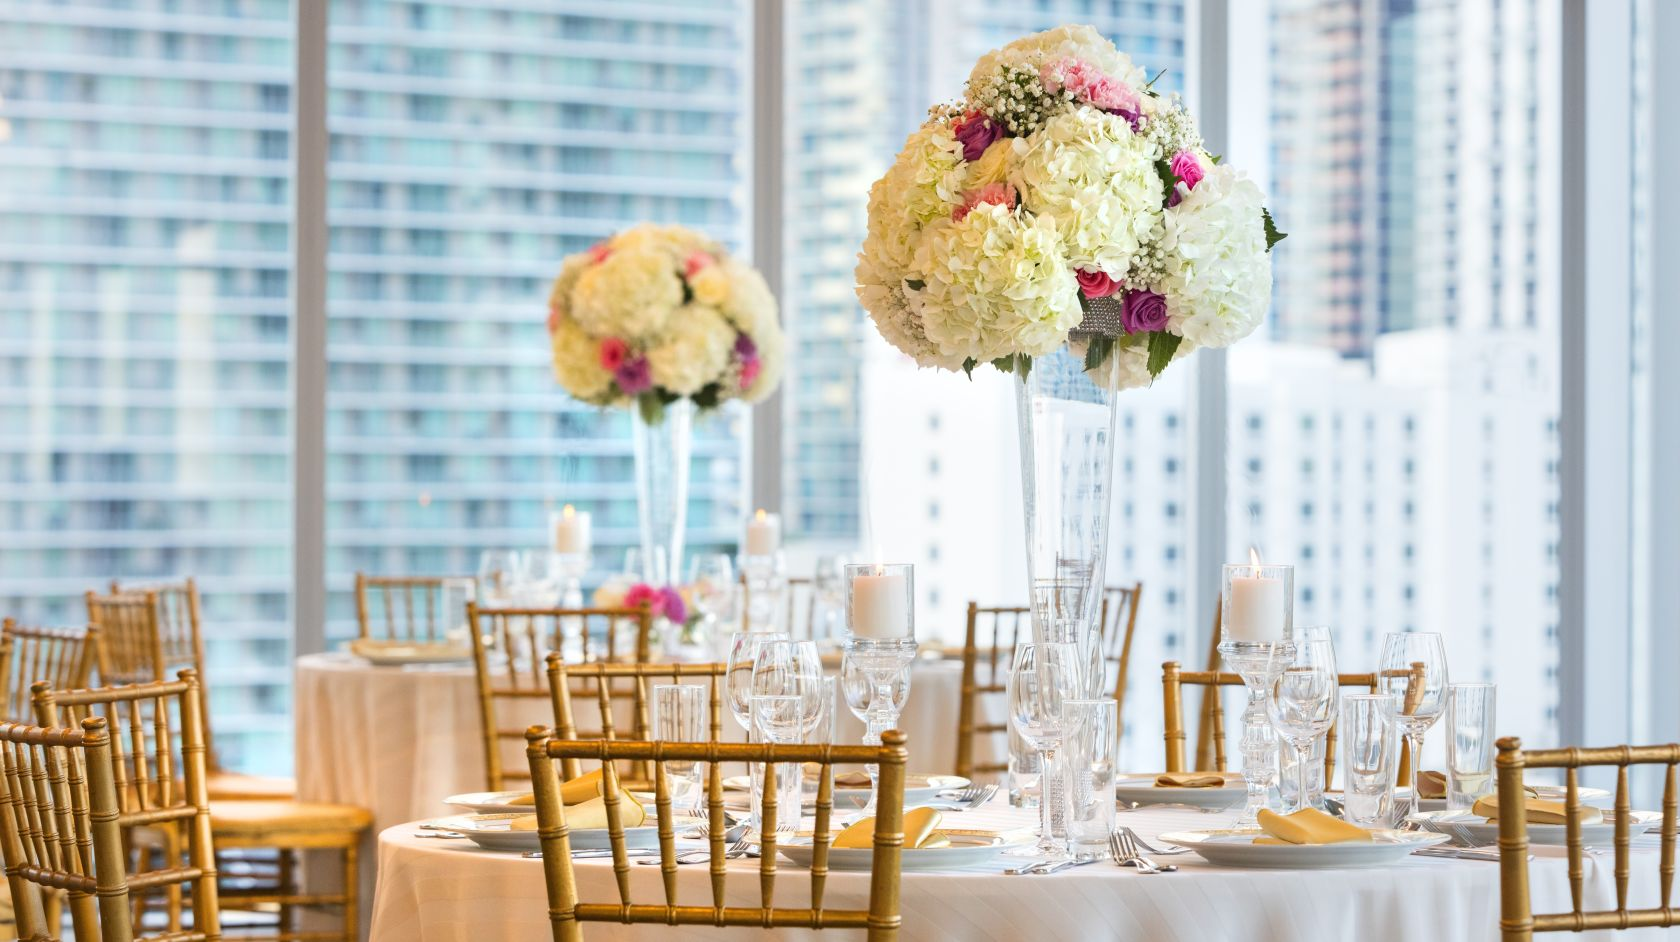 wedding banquet at Atton Brickell Miami hotel